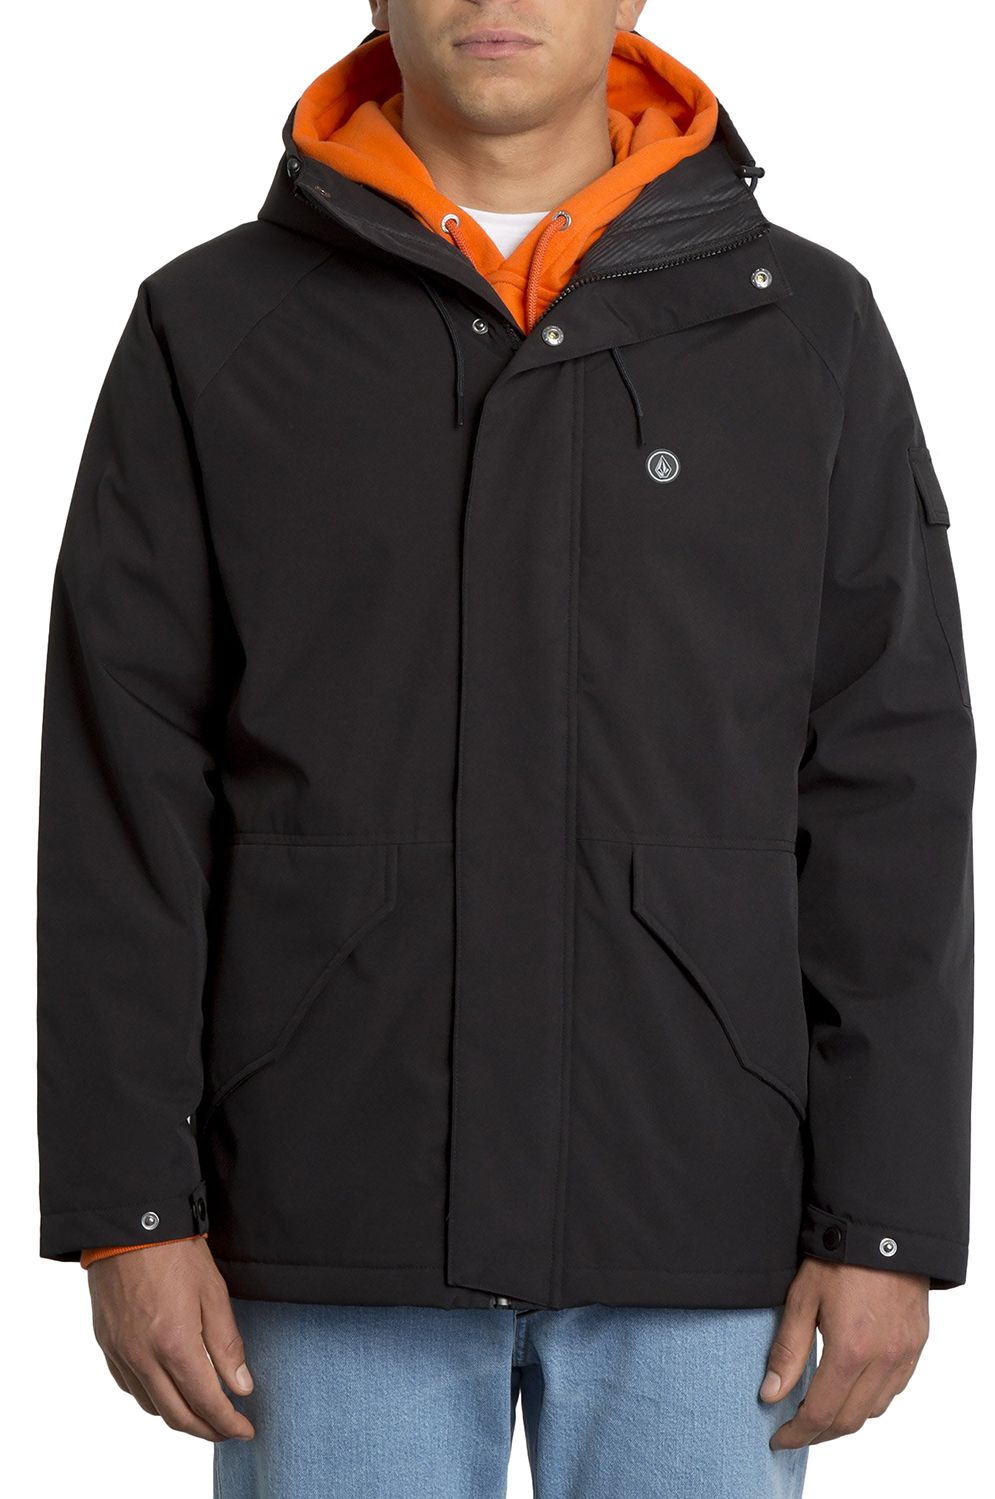 Volcom Jacket SYNTHWAVE 5K Black